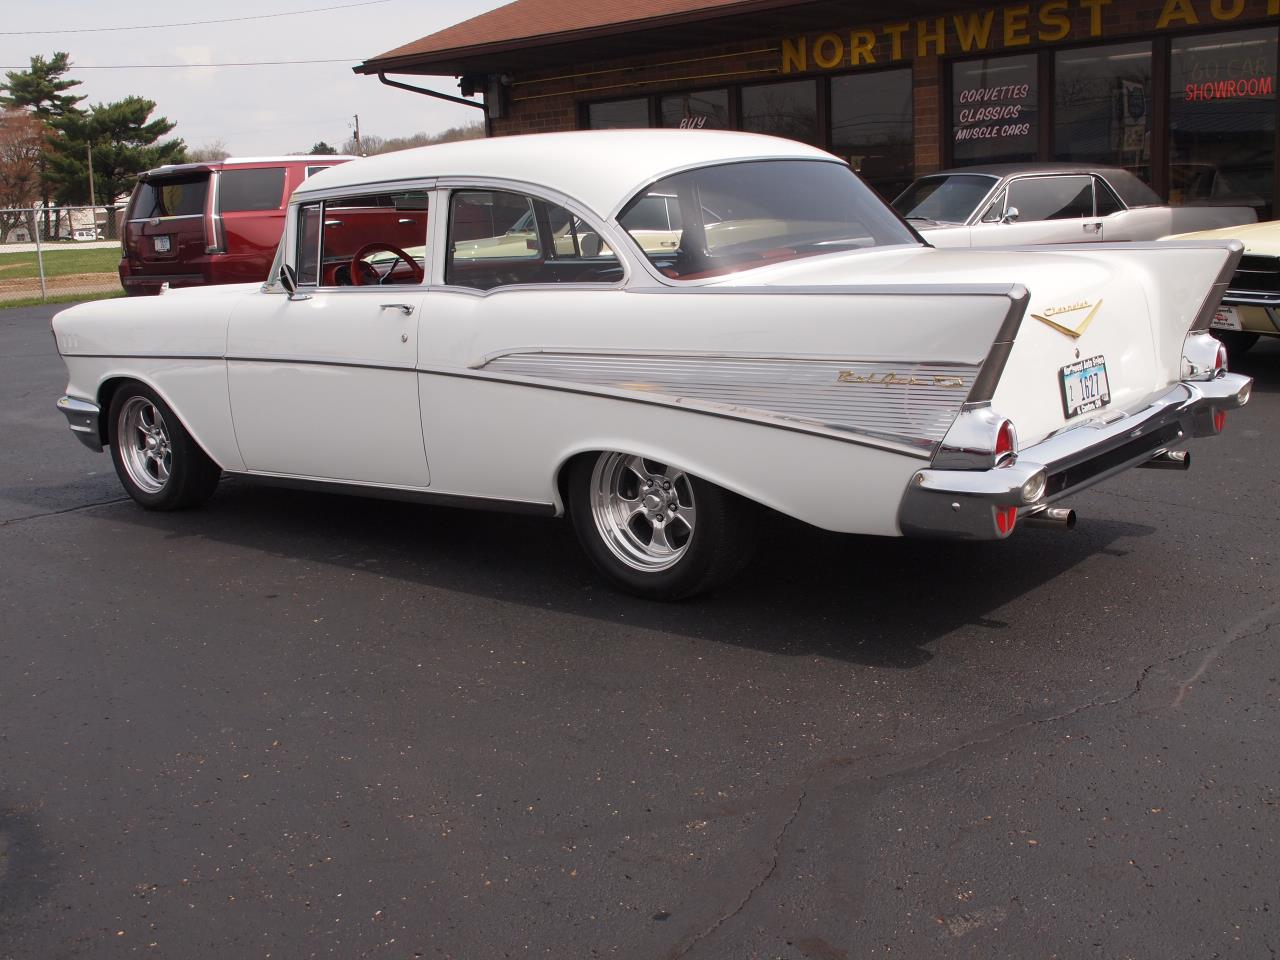 Large Picture of Classic 1957 Chevrolet Bel Air located in North Canton Ohio Offered by Ohio Corvettes and Muscle Cars - PX70